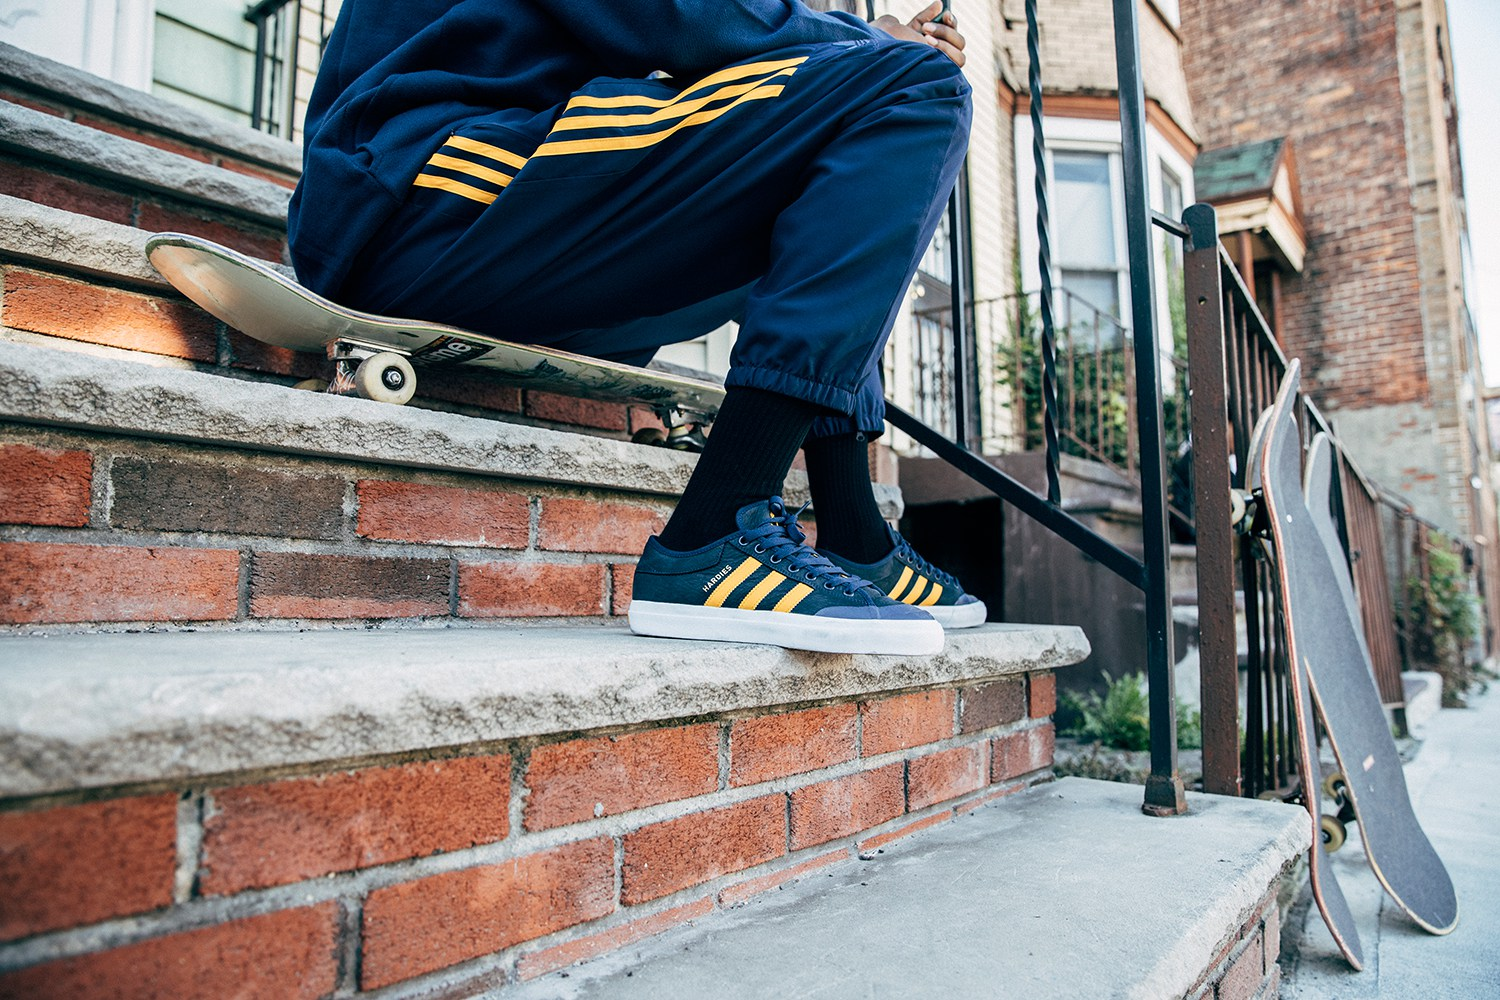 Adidas Skateboarding reprend ses collabs et dévoile une collection avec Hardies Hardware